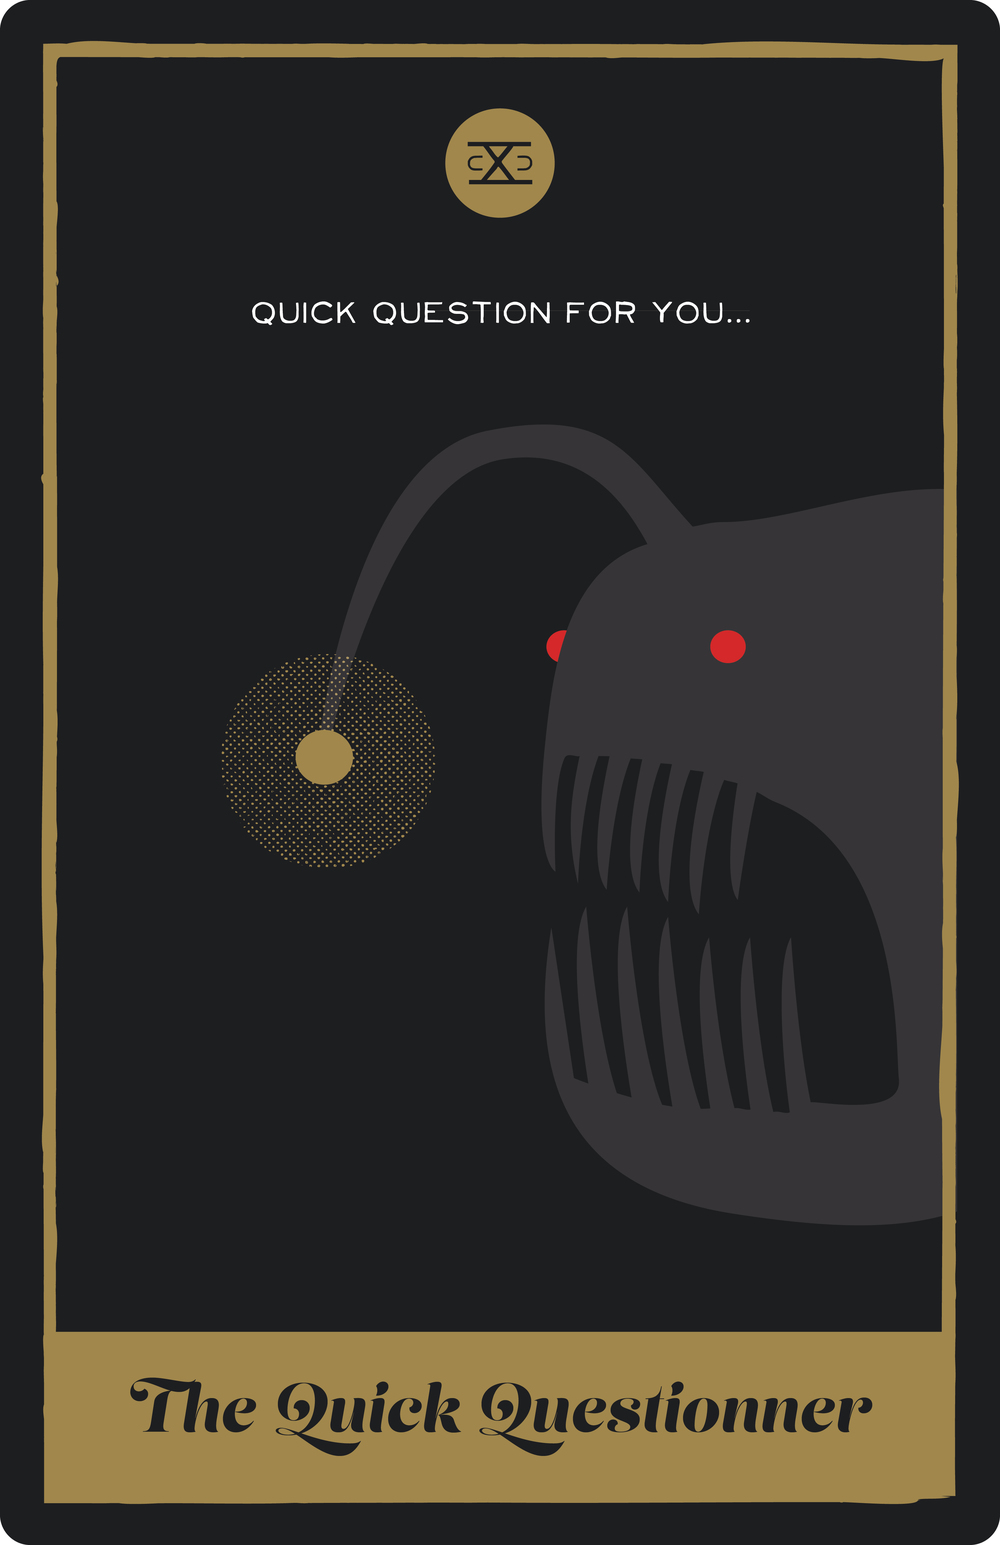 GoldRed_CXD-Tarot-QuickQuestion-01.jpg